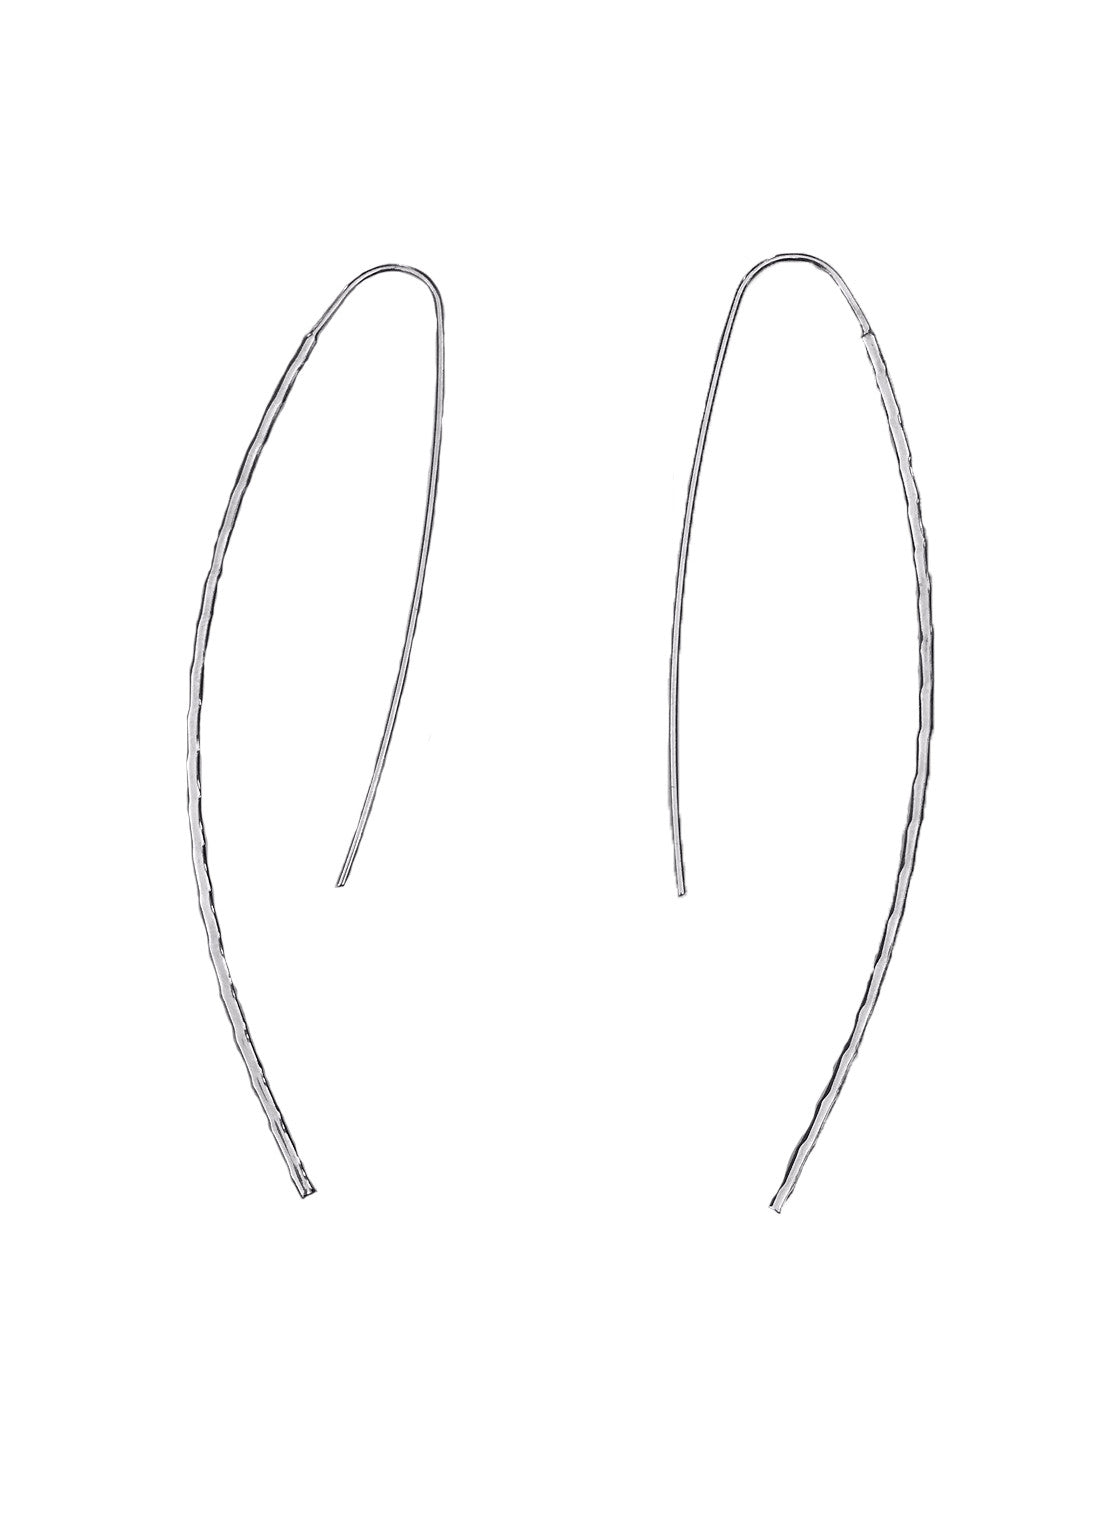 Roxy Silver Hook Earrings